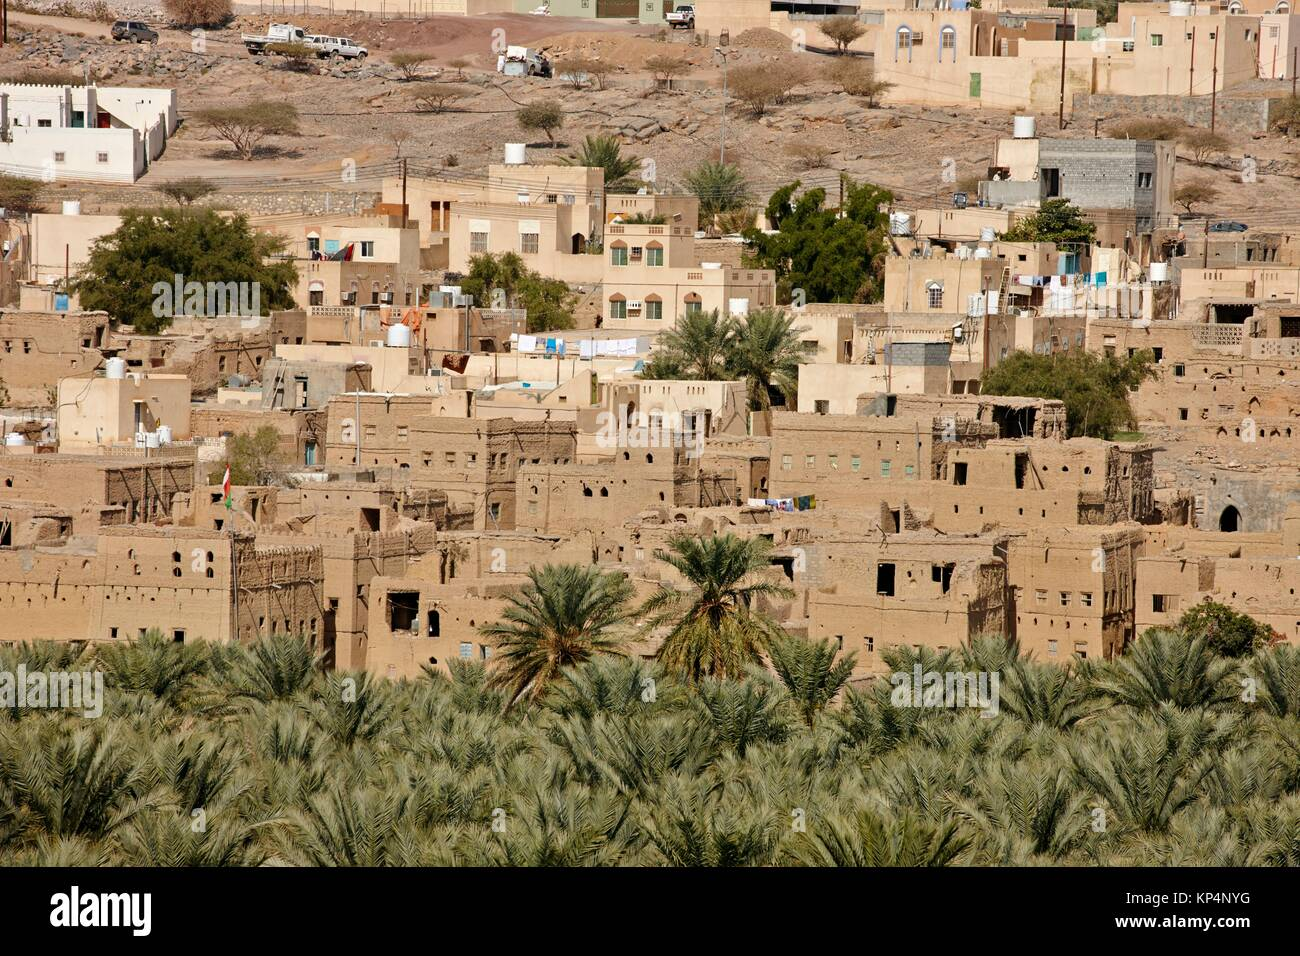 Palms and townscape. Historic town of Al Hamra, Oman. - Stock Image